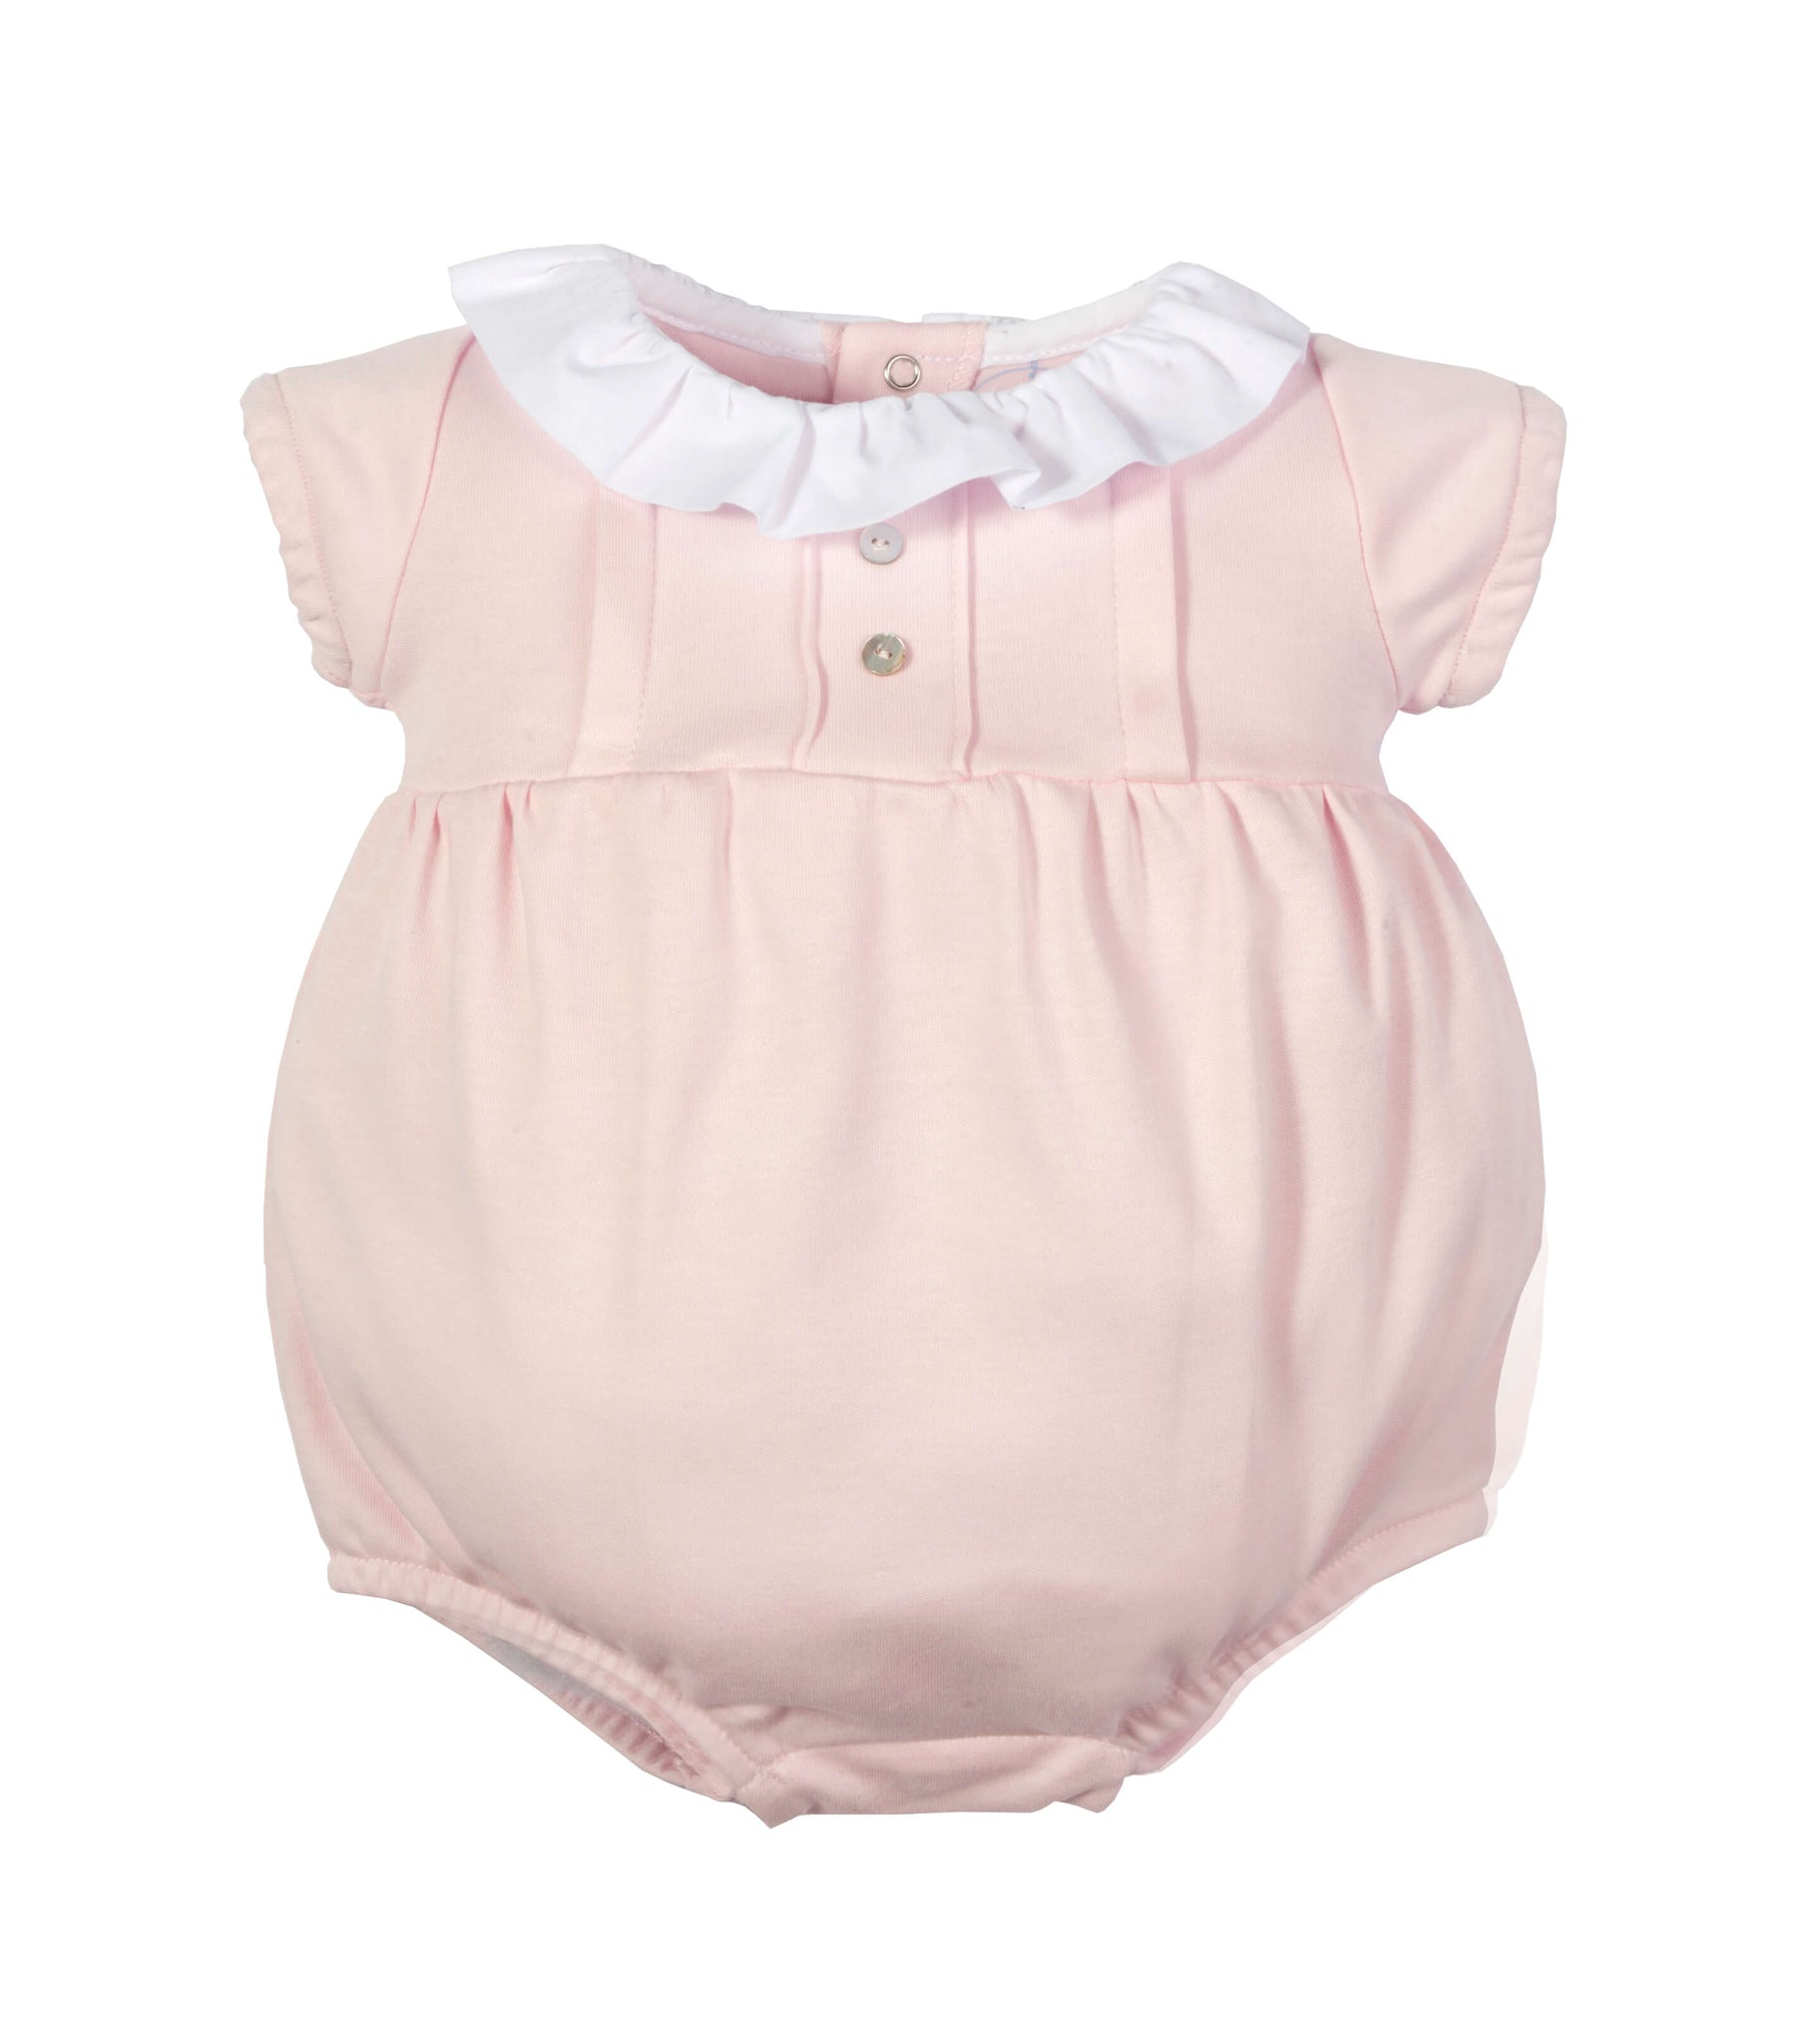 LARANJINHA PINK DRESSY ROMPER WITH RUFFLE AT NECK